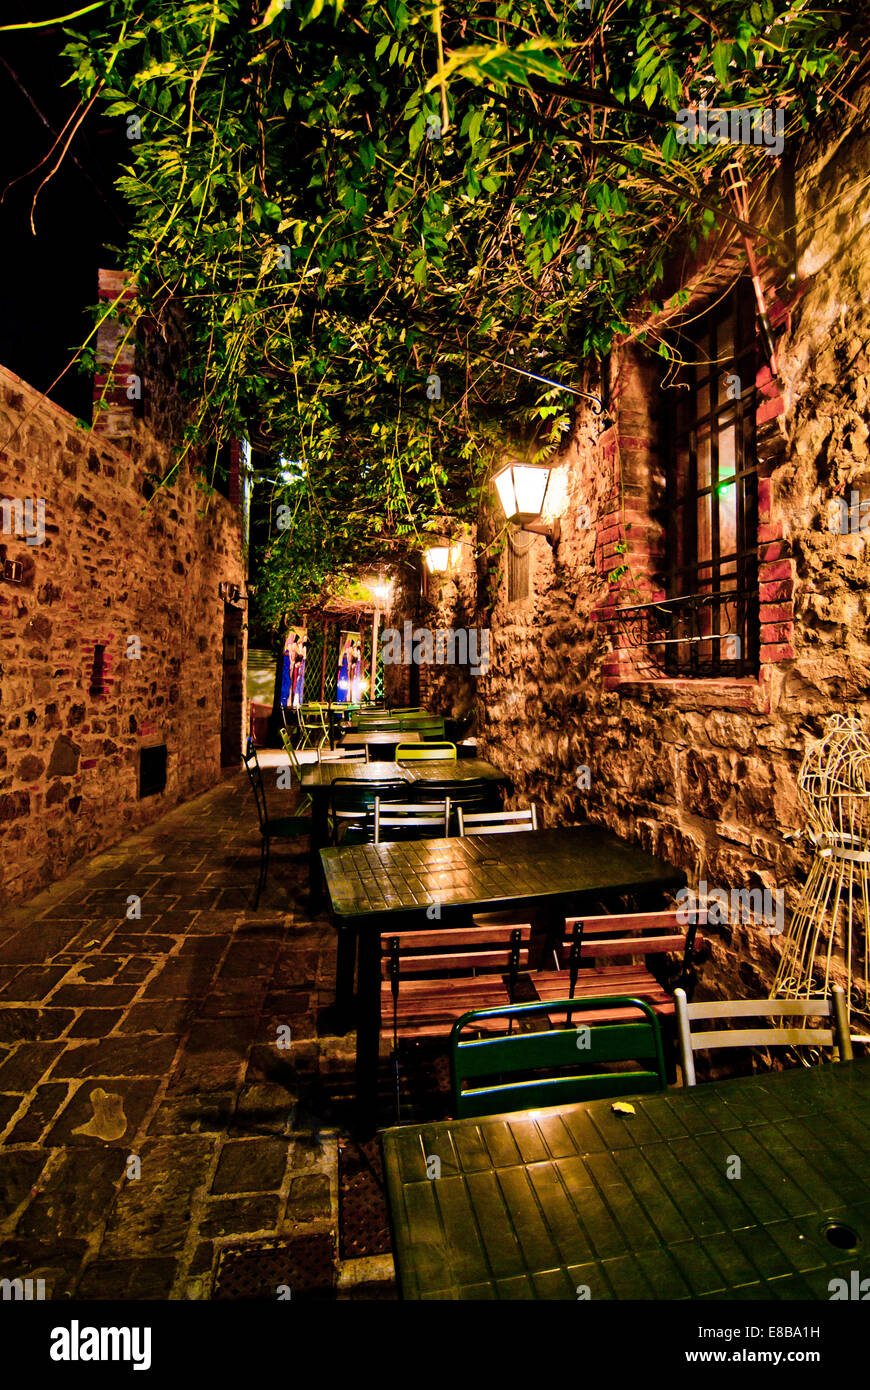 romantic dinner at night in a small Italian restaurant with outdoor ...